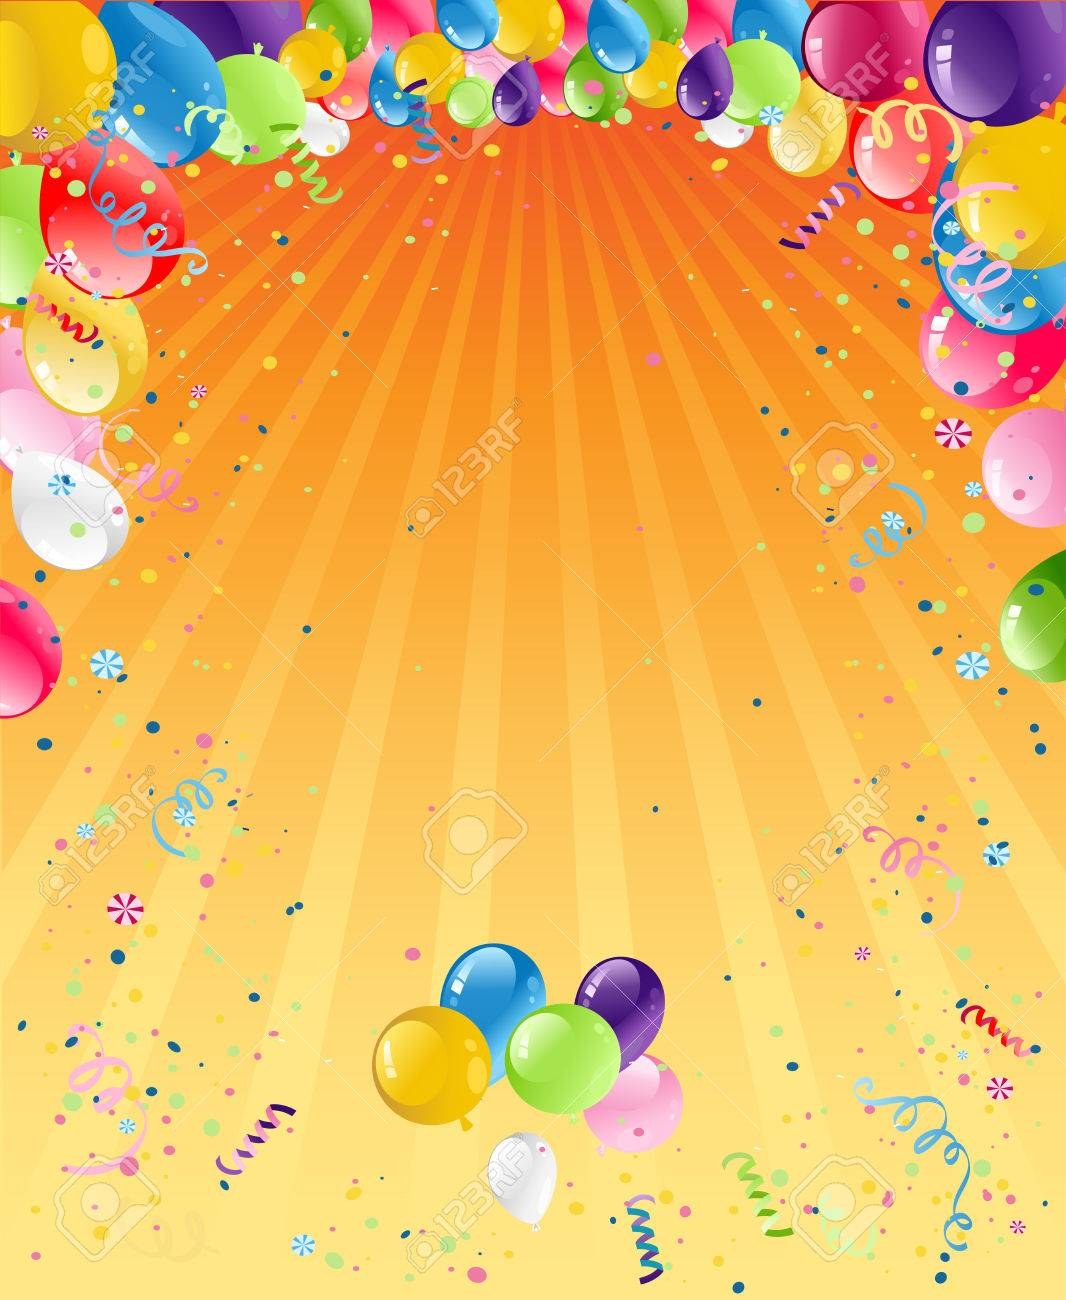 happy birthday poster designs ; 72163748-holiday-template-for-design-banner-ticket-leaflet-card-poster-and-so-on-happy-birthday-background-an